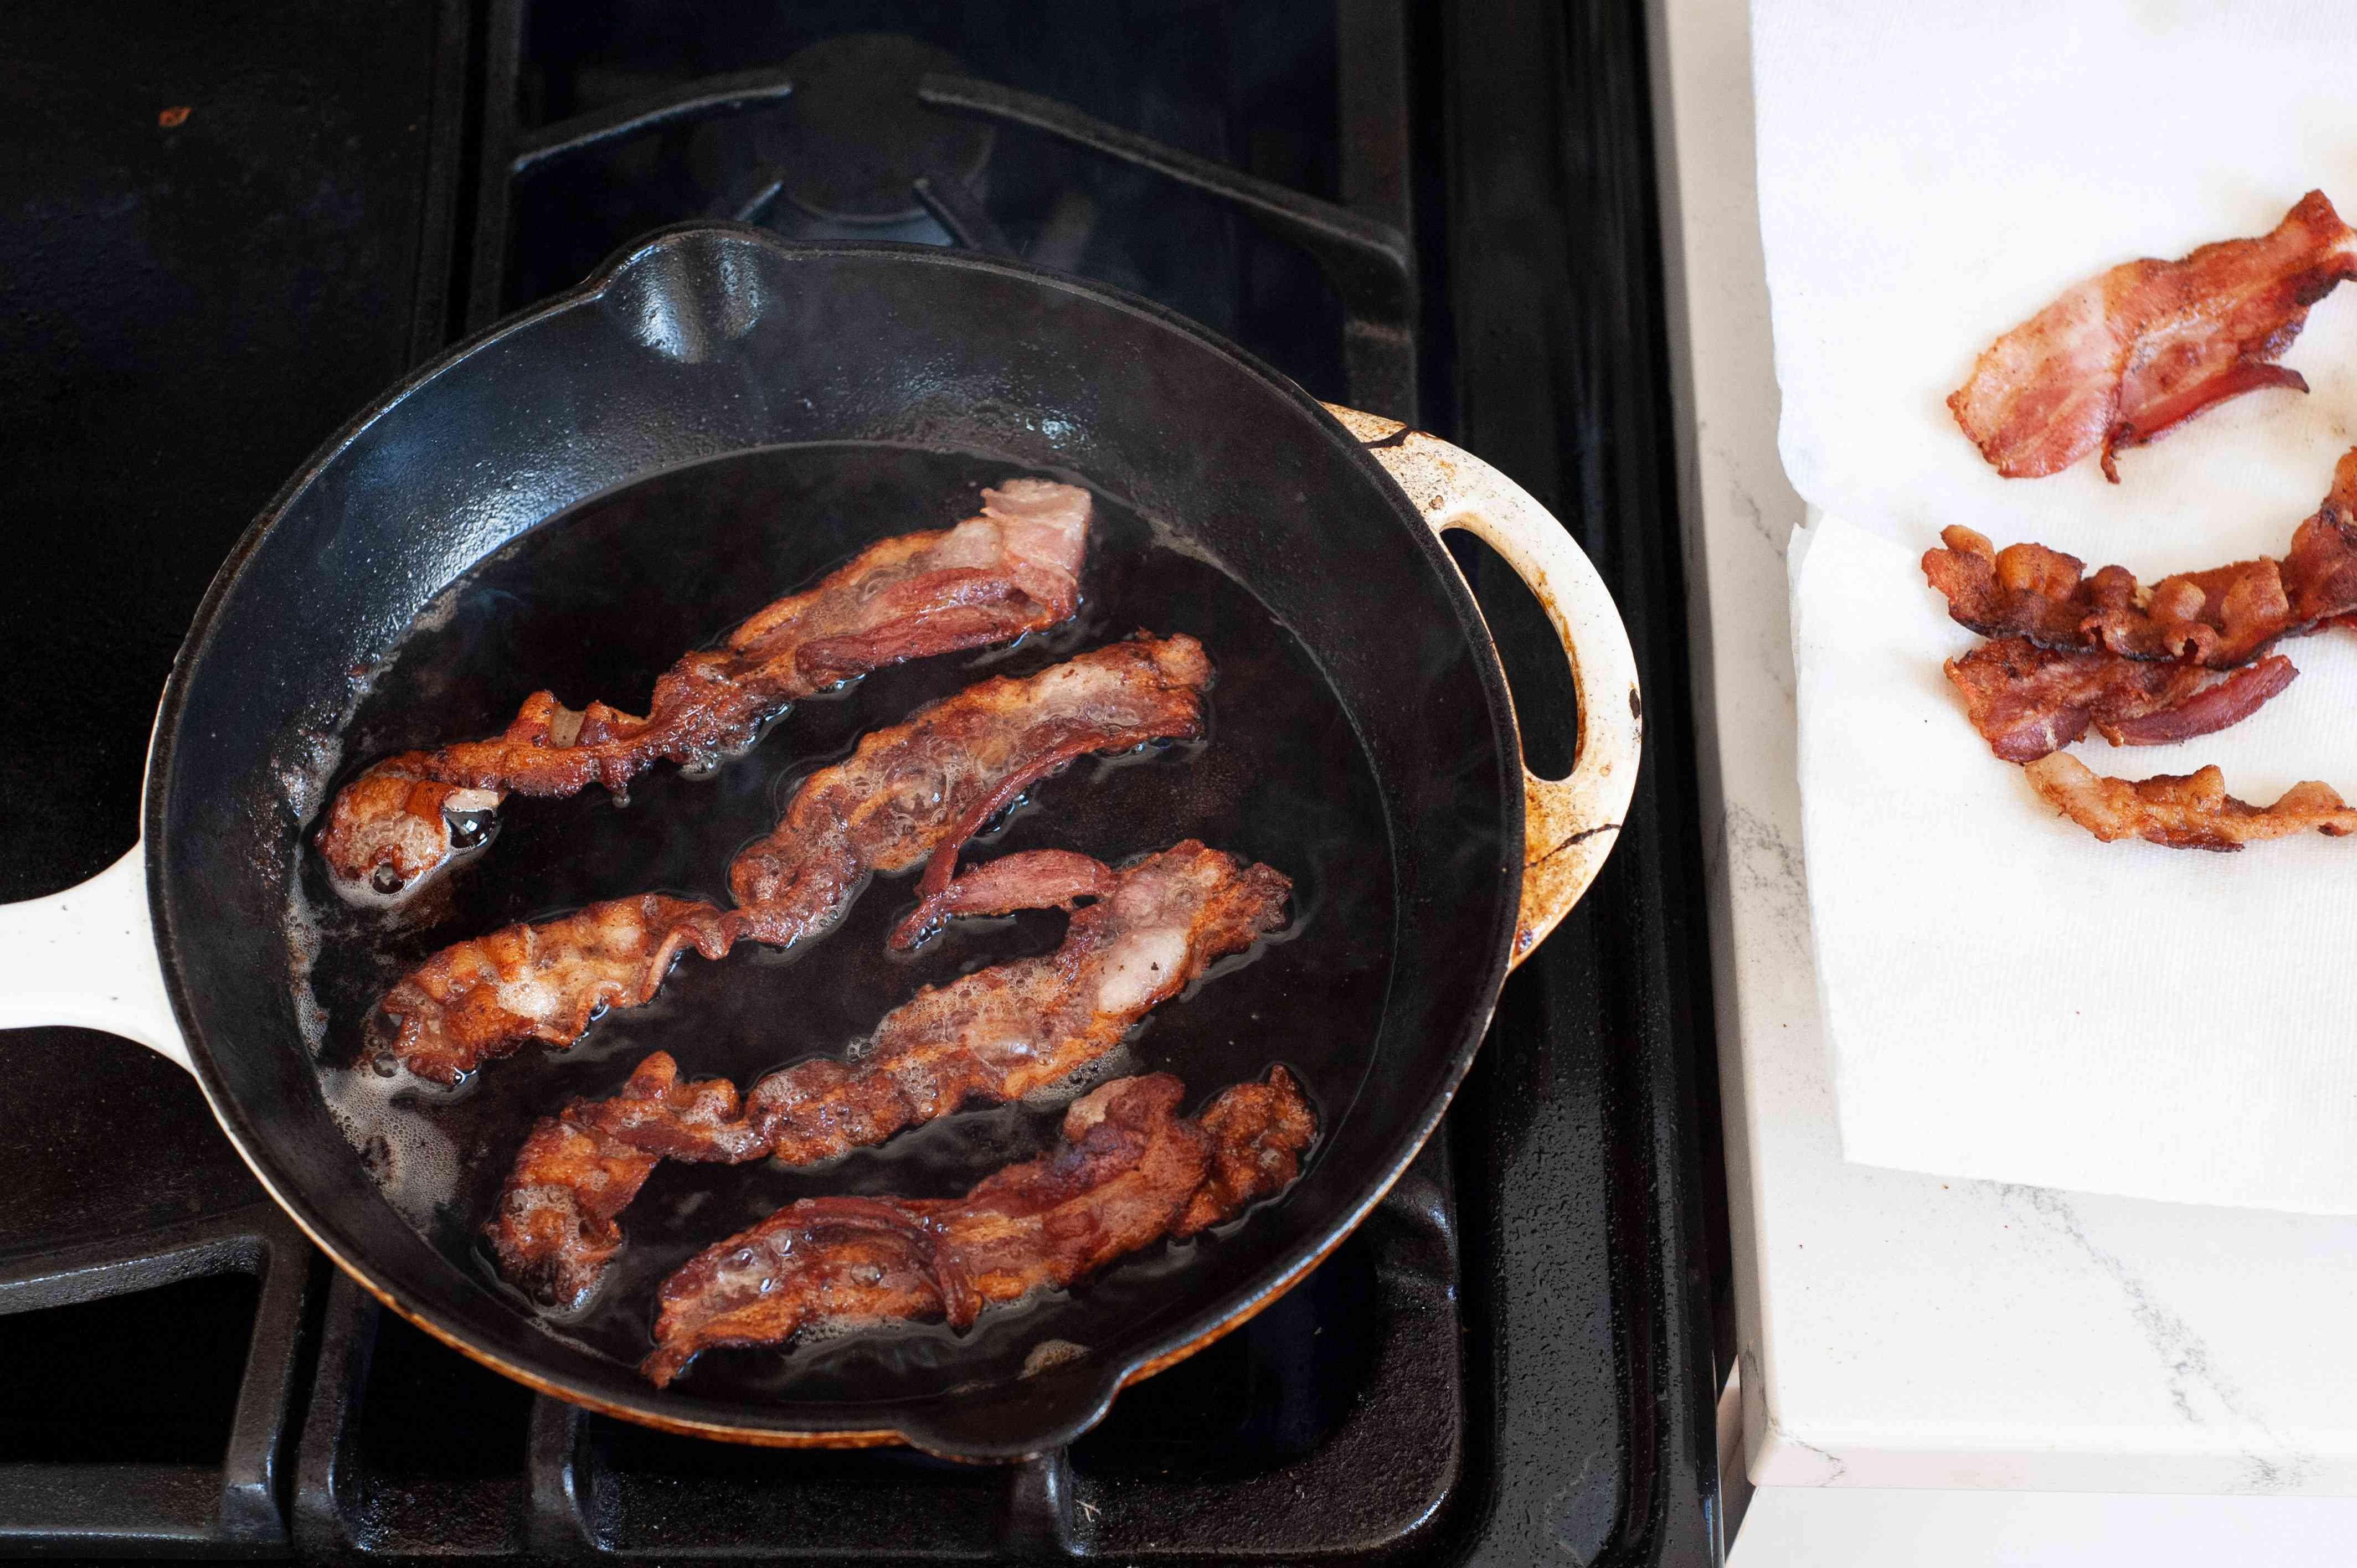 Pan frying bacon to make pasta with bacon and tomatoes